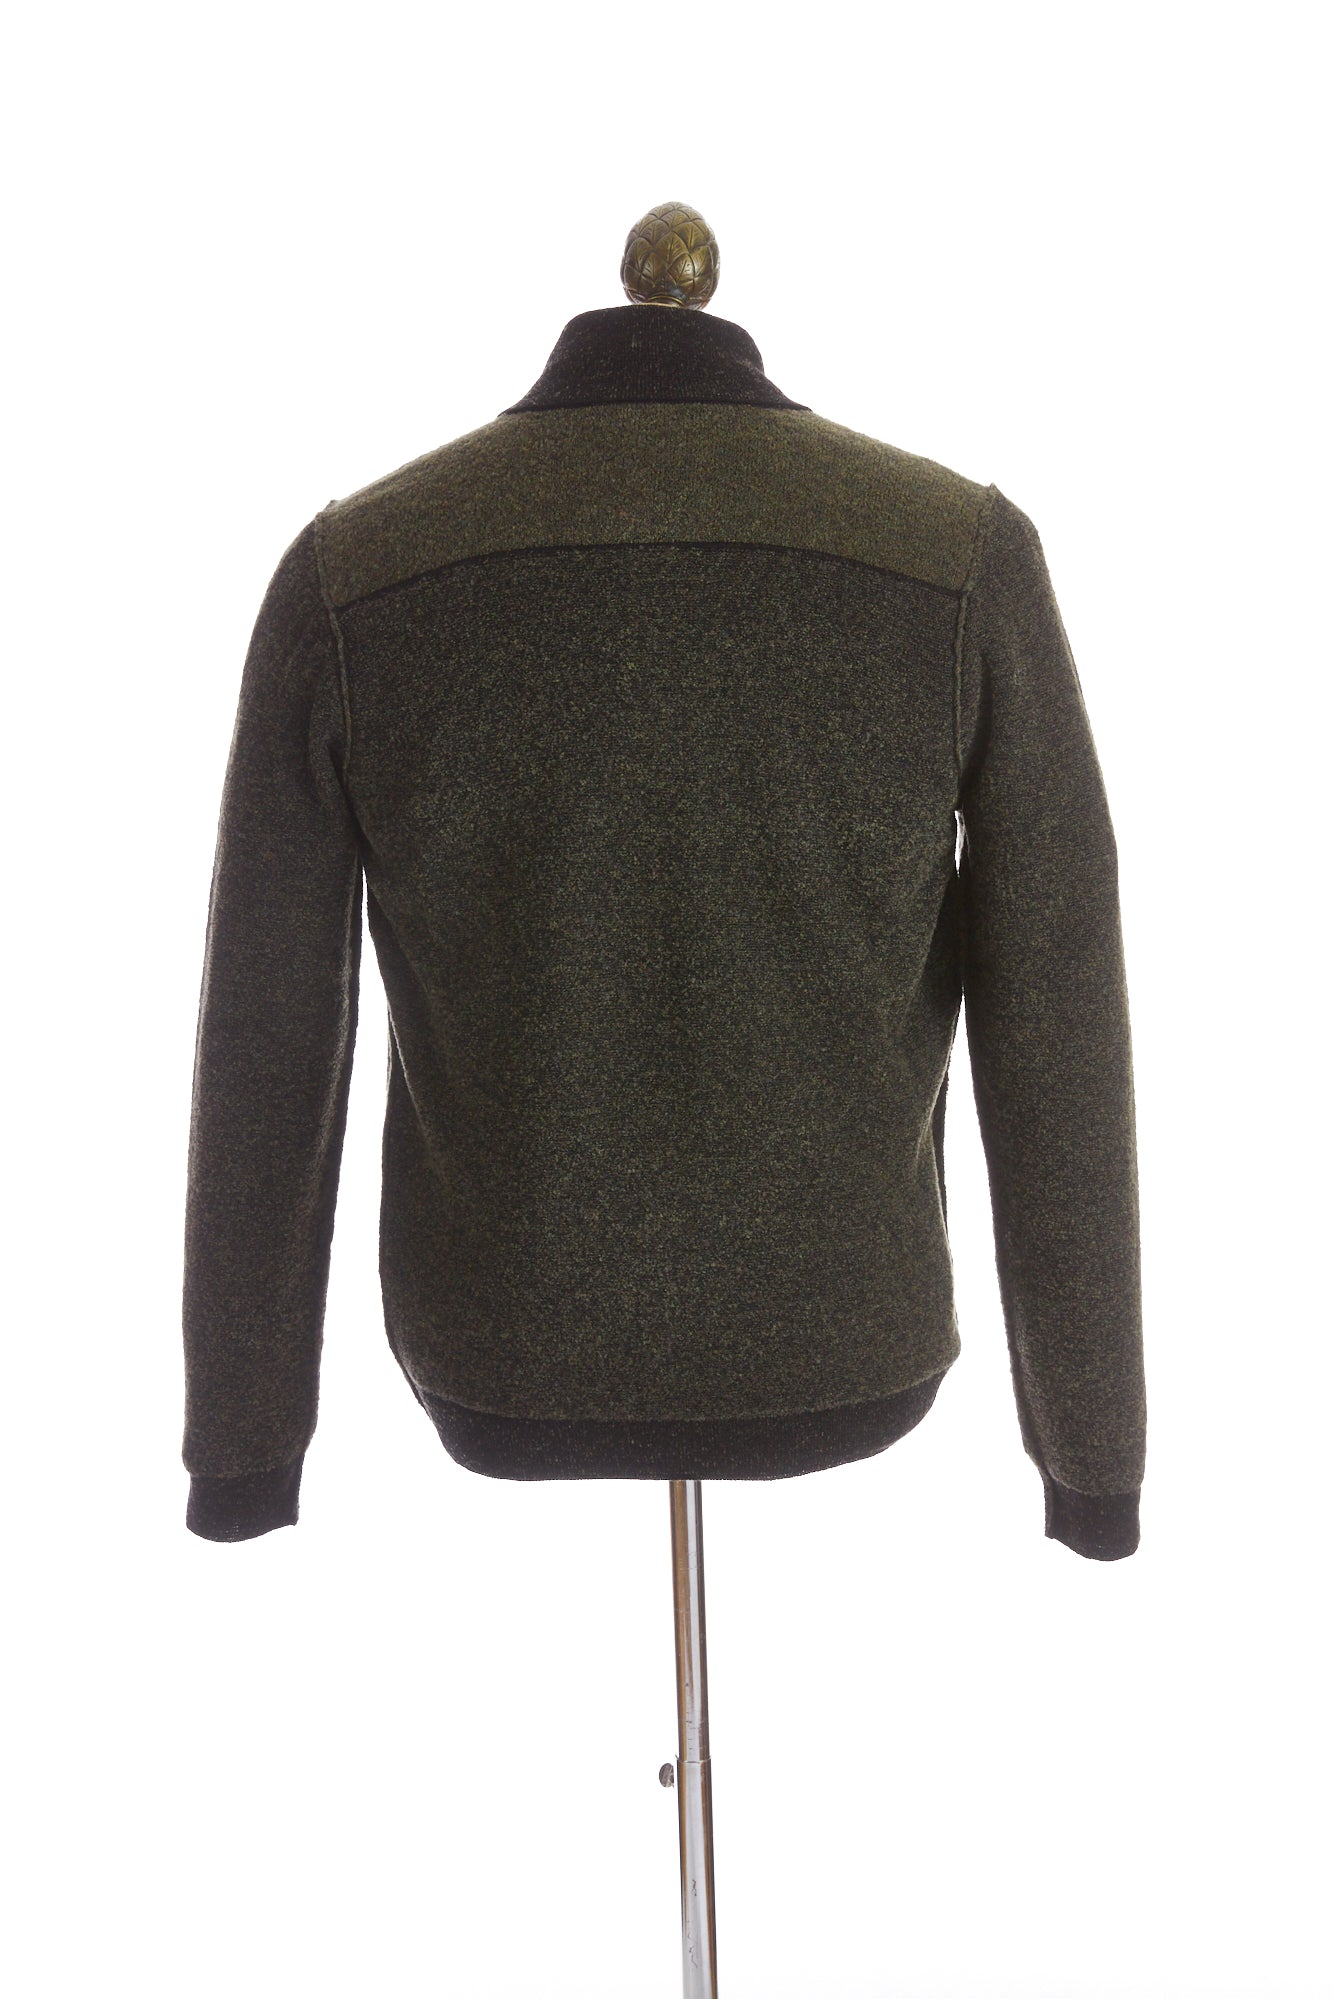 Phil Petter Green Two-tone Full Zip Sweater